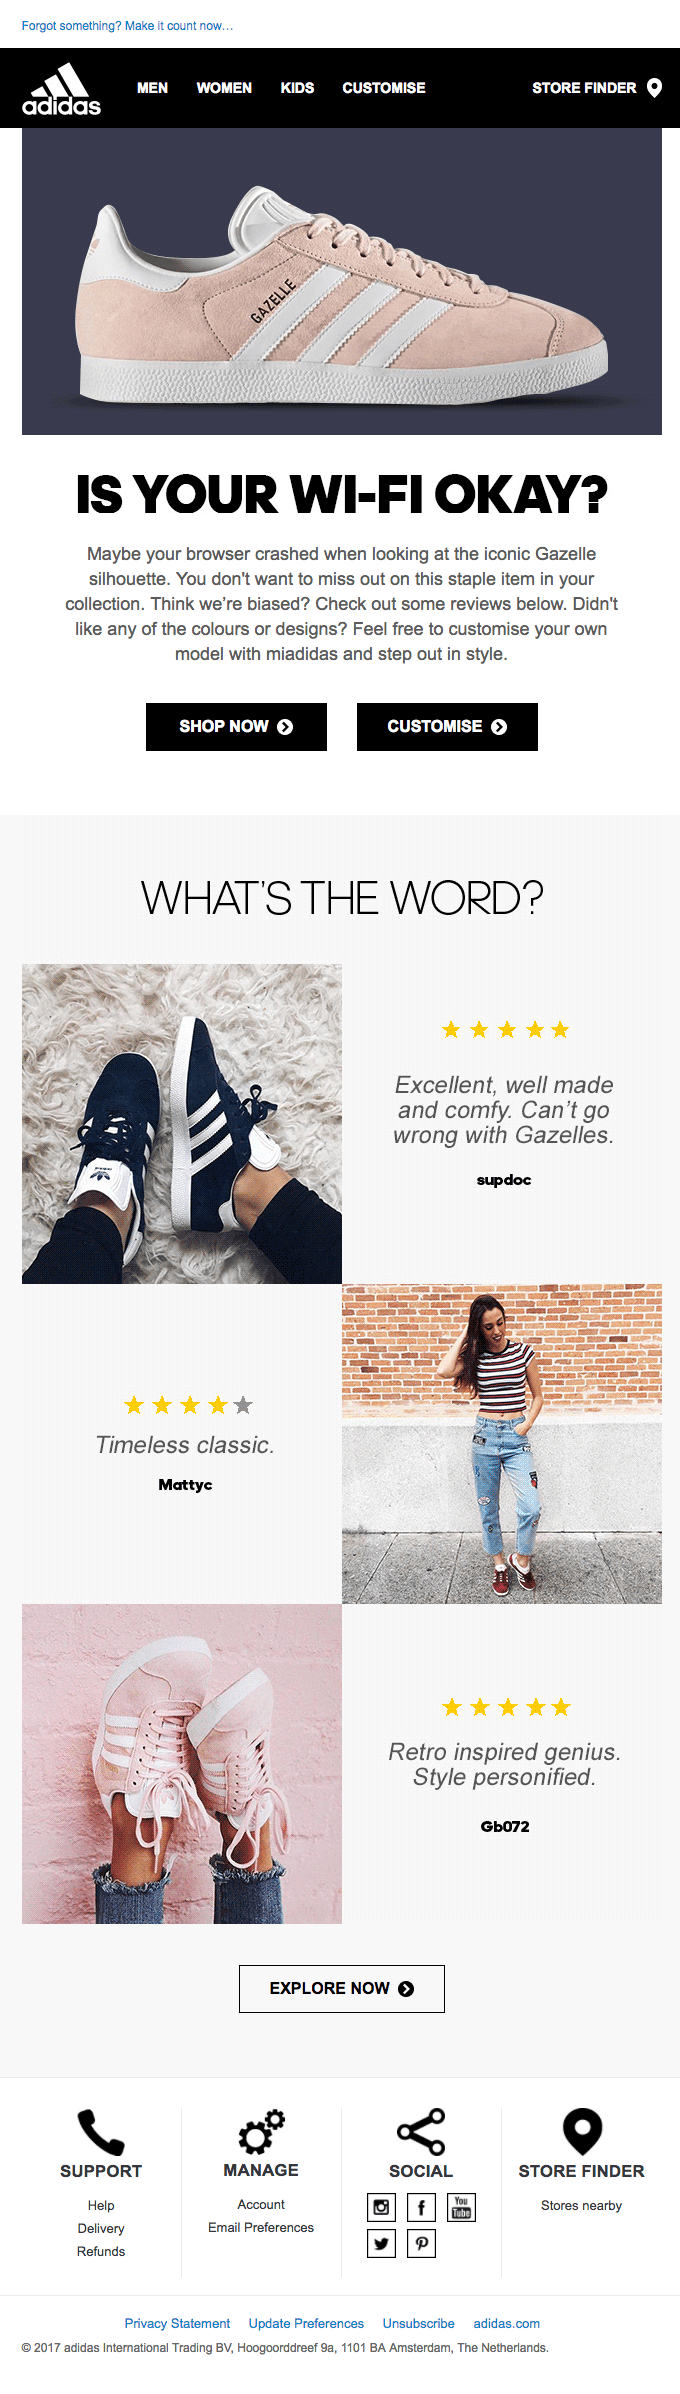 Browse abandonment email - Adidas